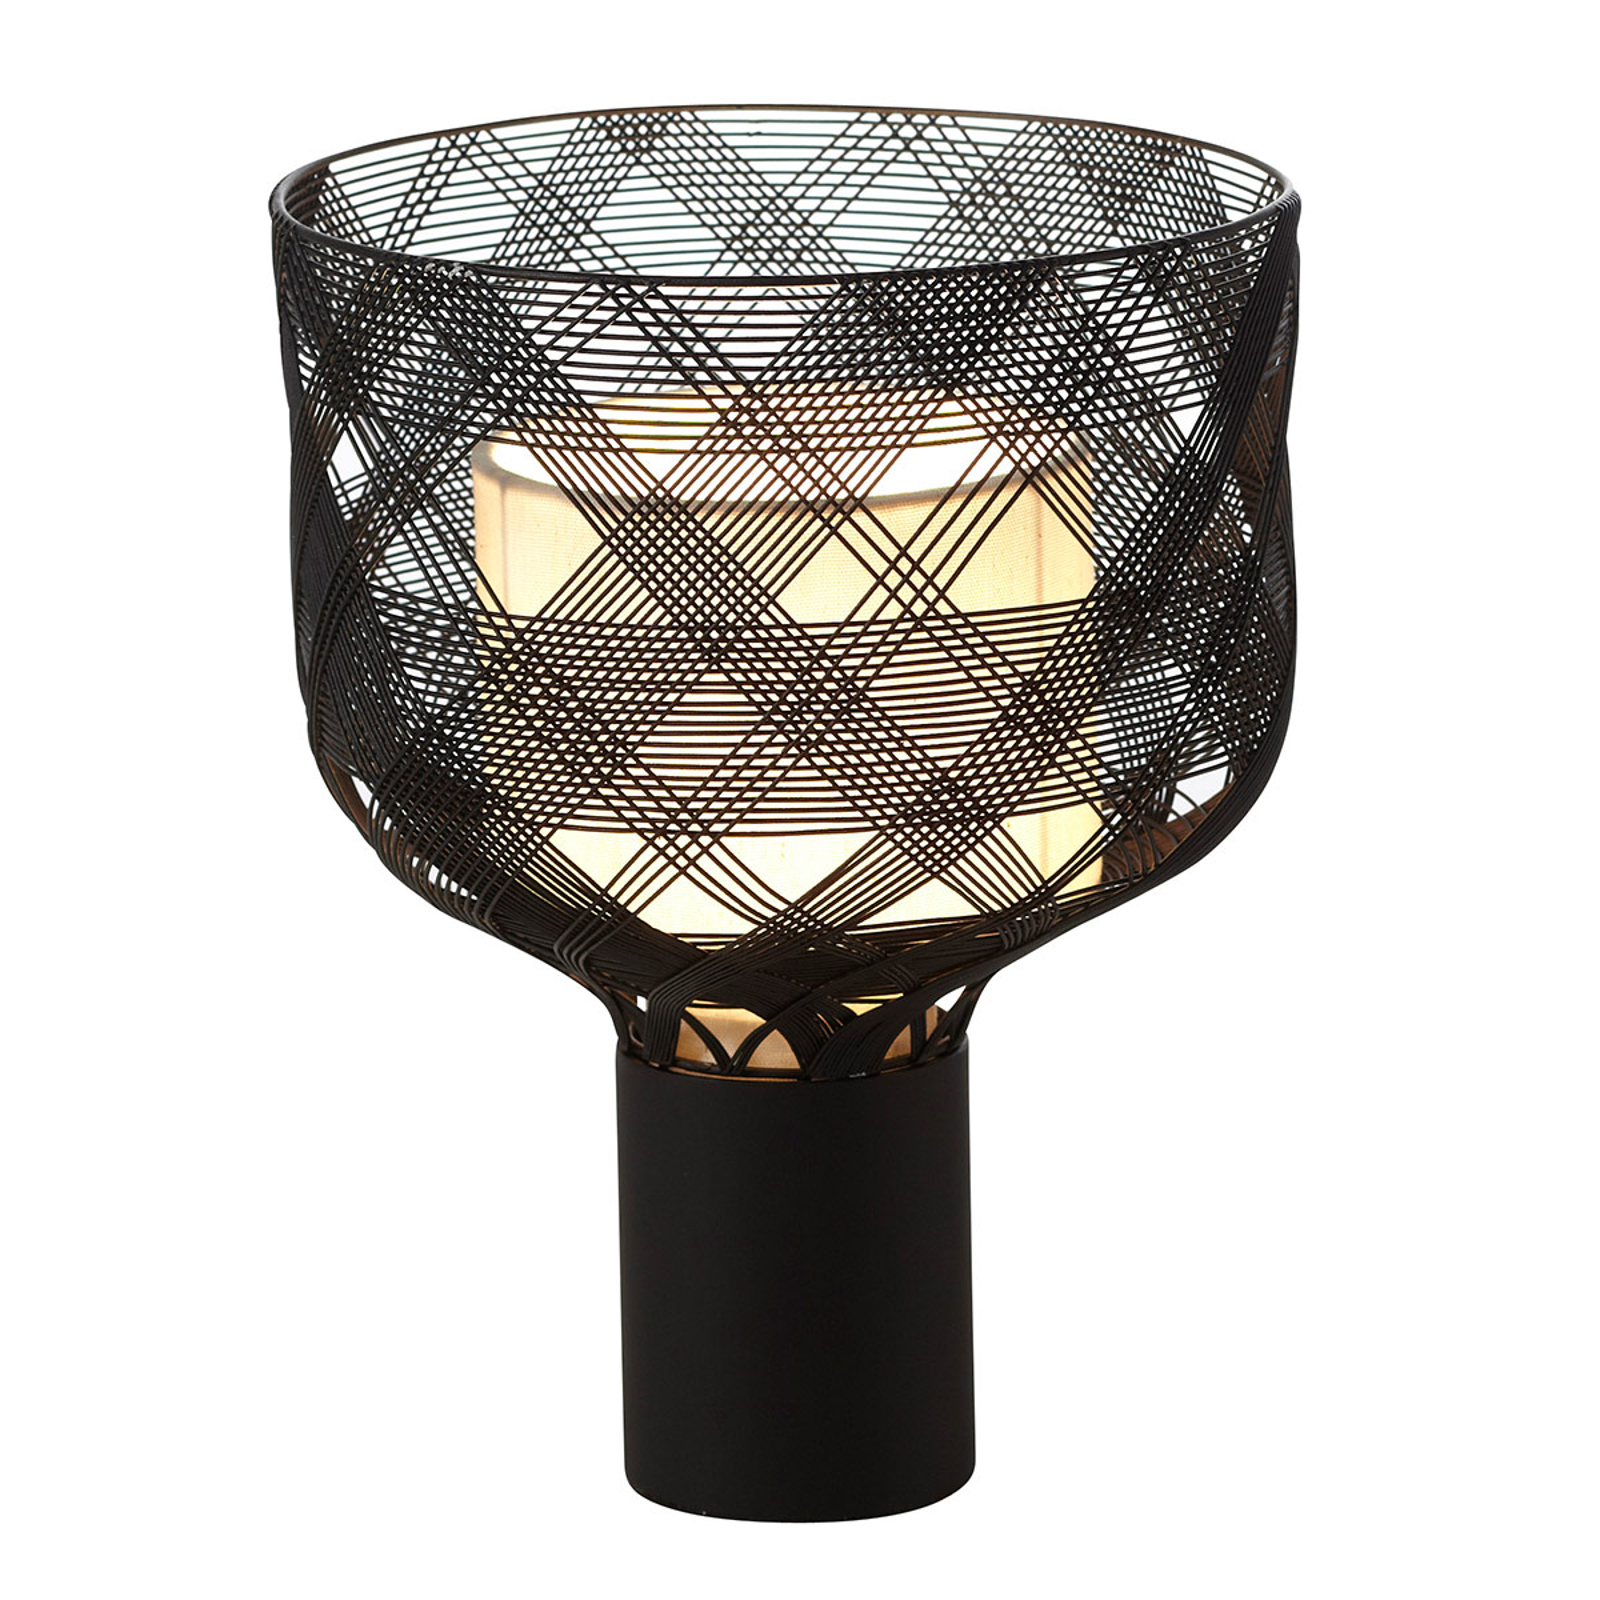 Forestier Antenna S table lamp 20 cm black_3567030_1